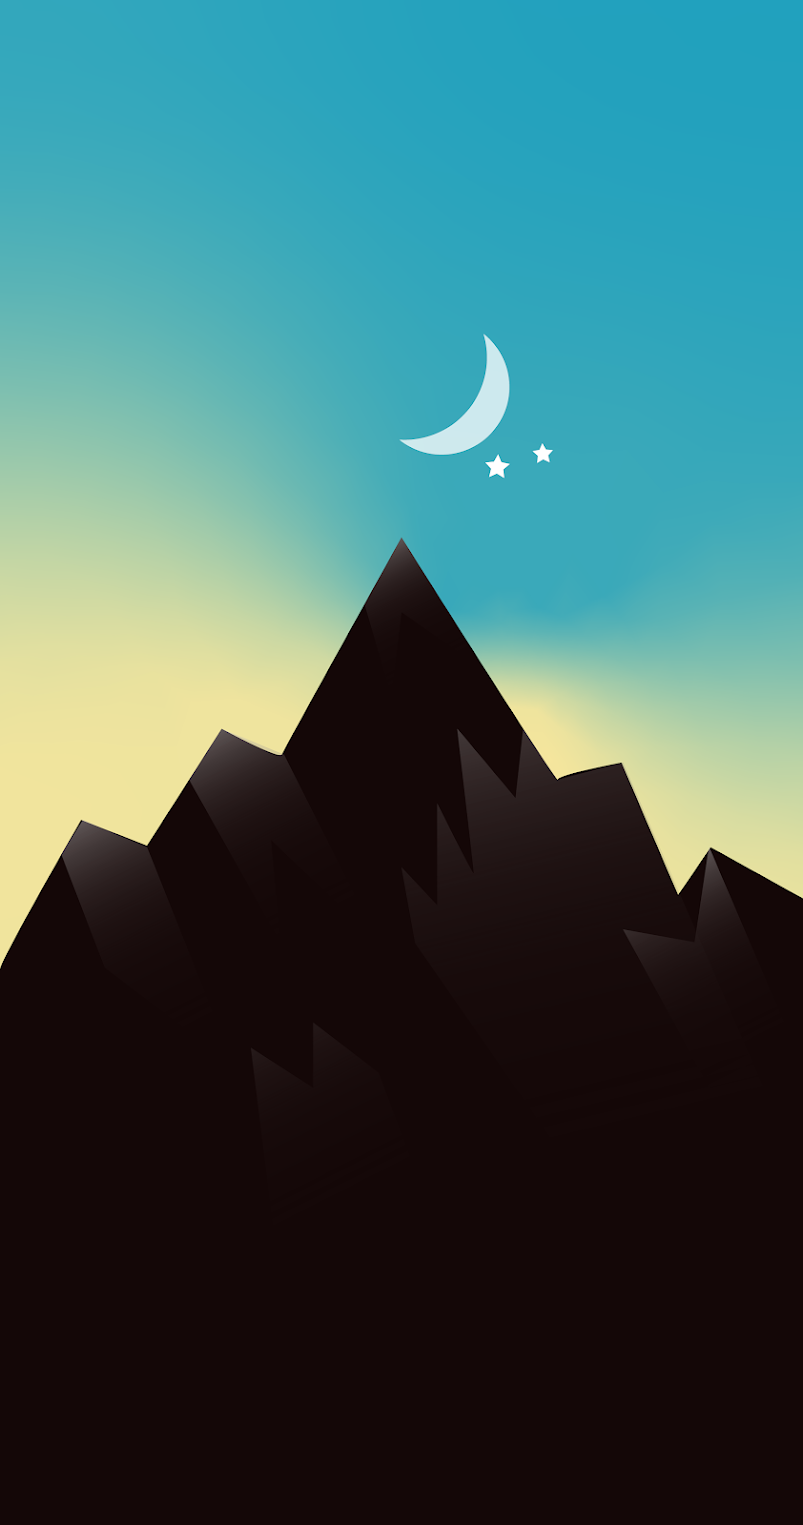 Wallpaper minimalist mountain with one star for mobile phone